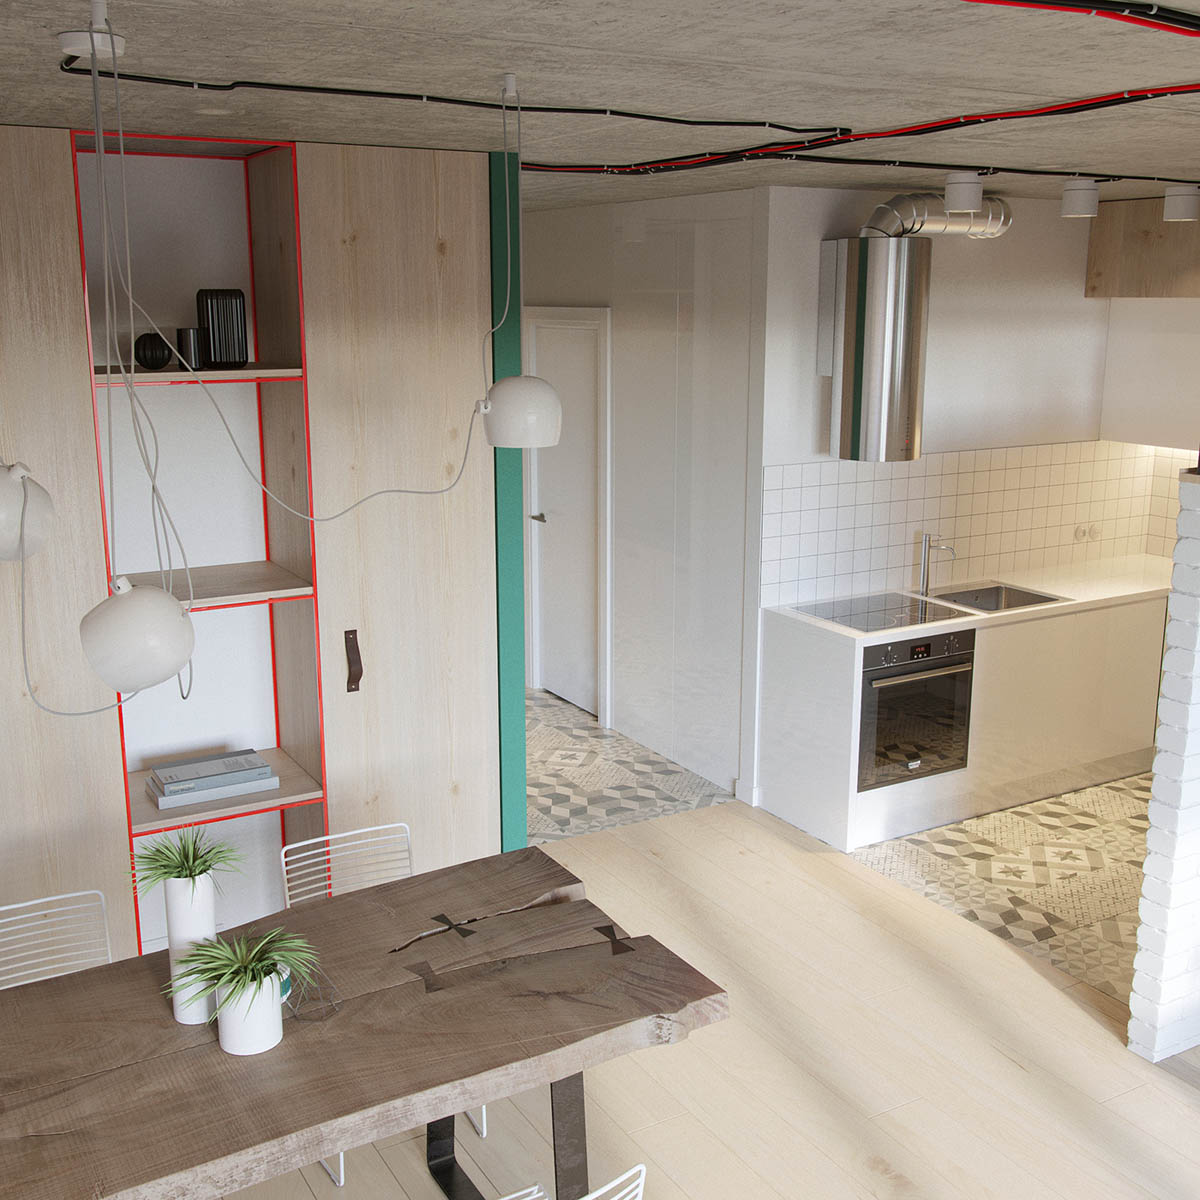 Red And Green Colour Ways Wooden Floor Modern Russian Apartment - Industrial russian interior with quirky colour twists including floor plans